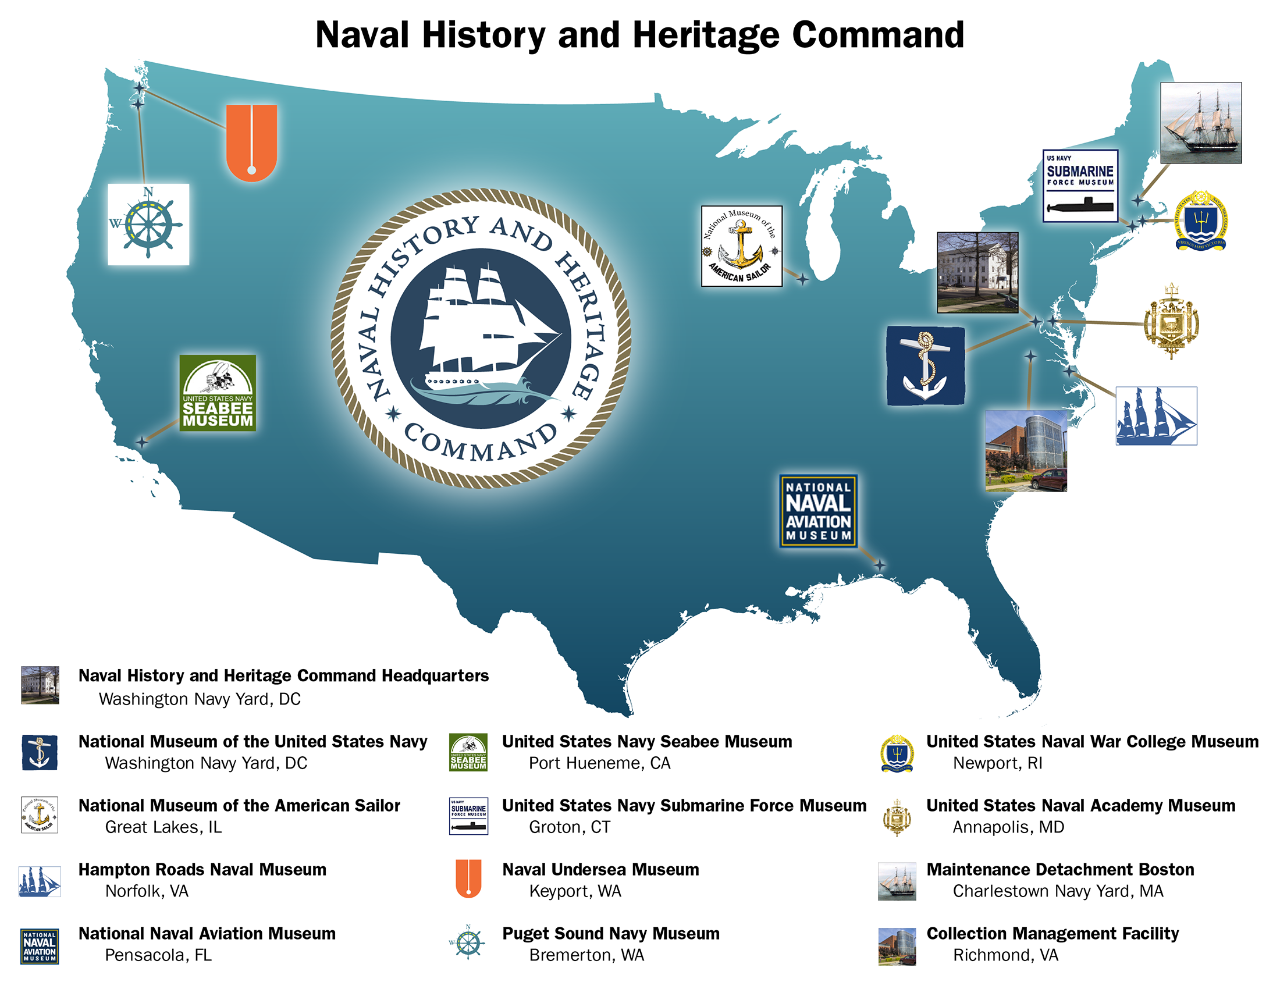 Map of the Naval History and Heritage Command installations